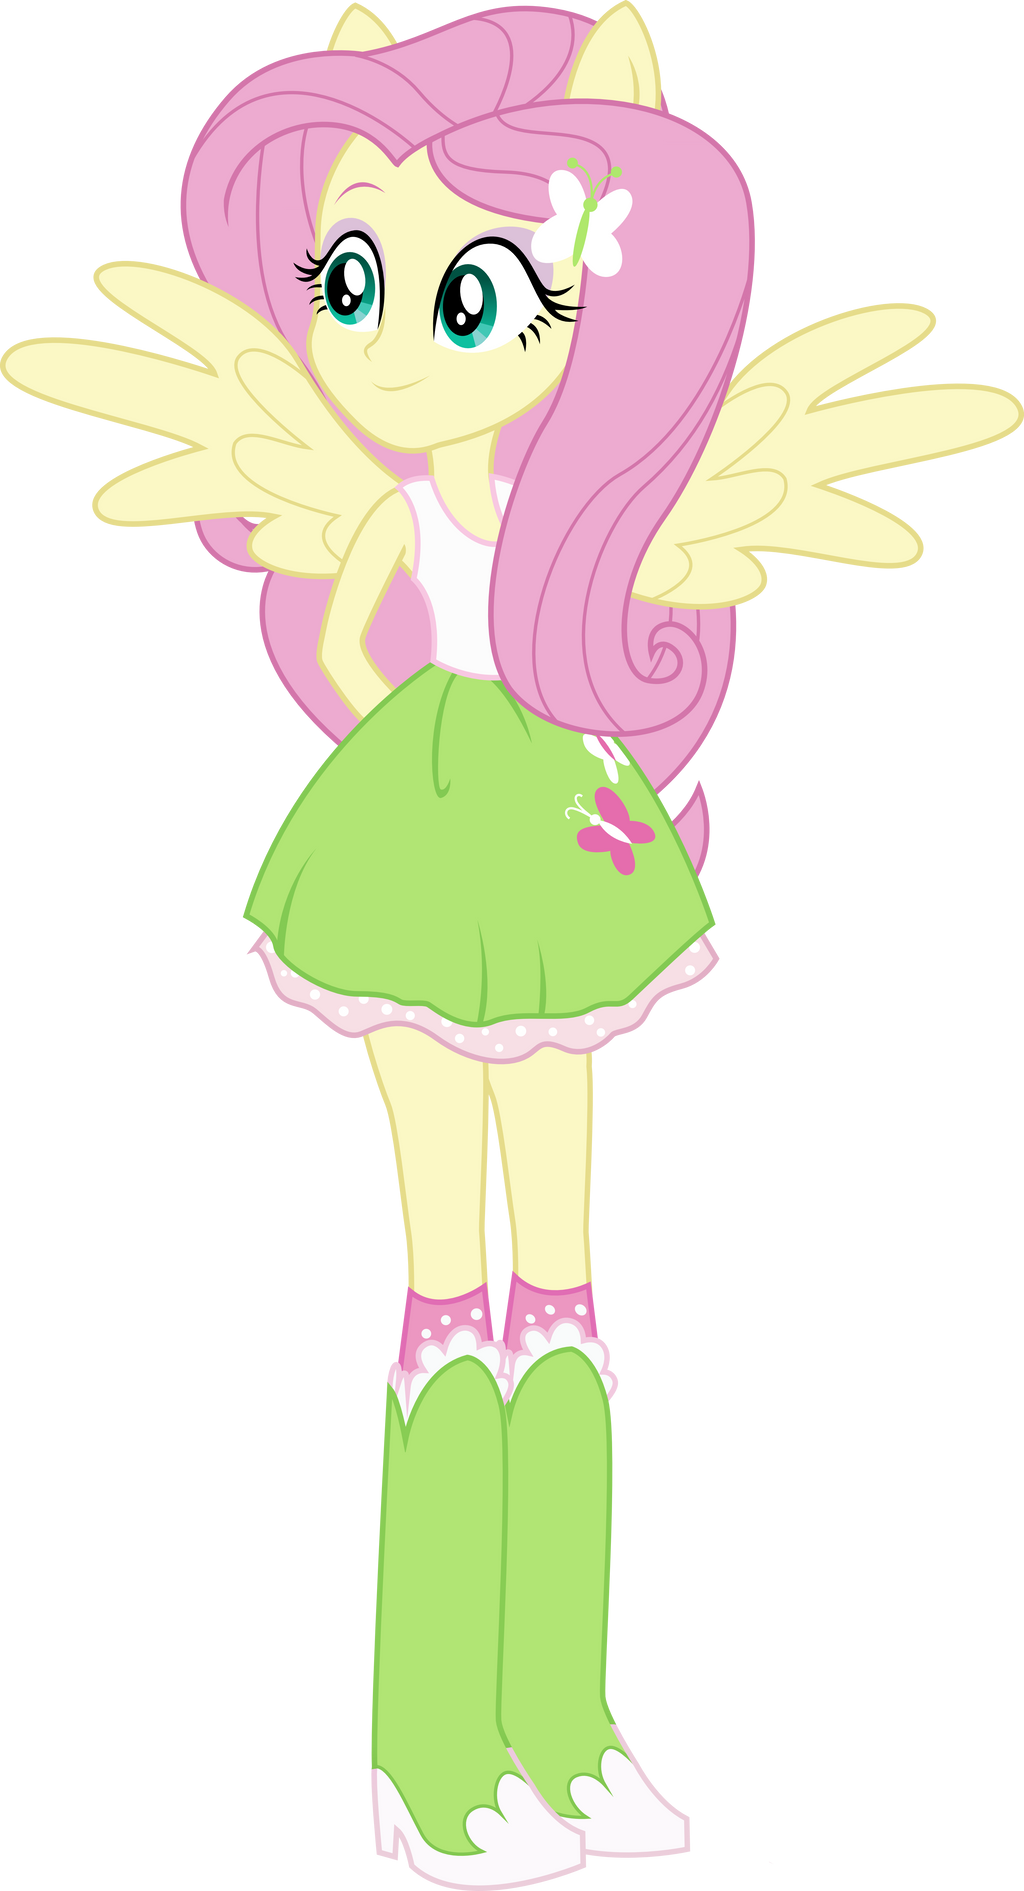 Image result for fluttershy equestria girl